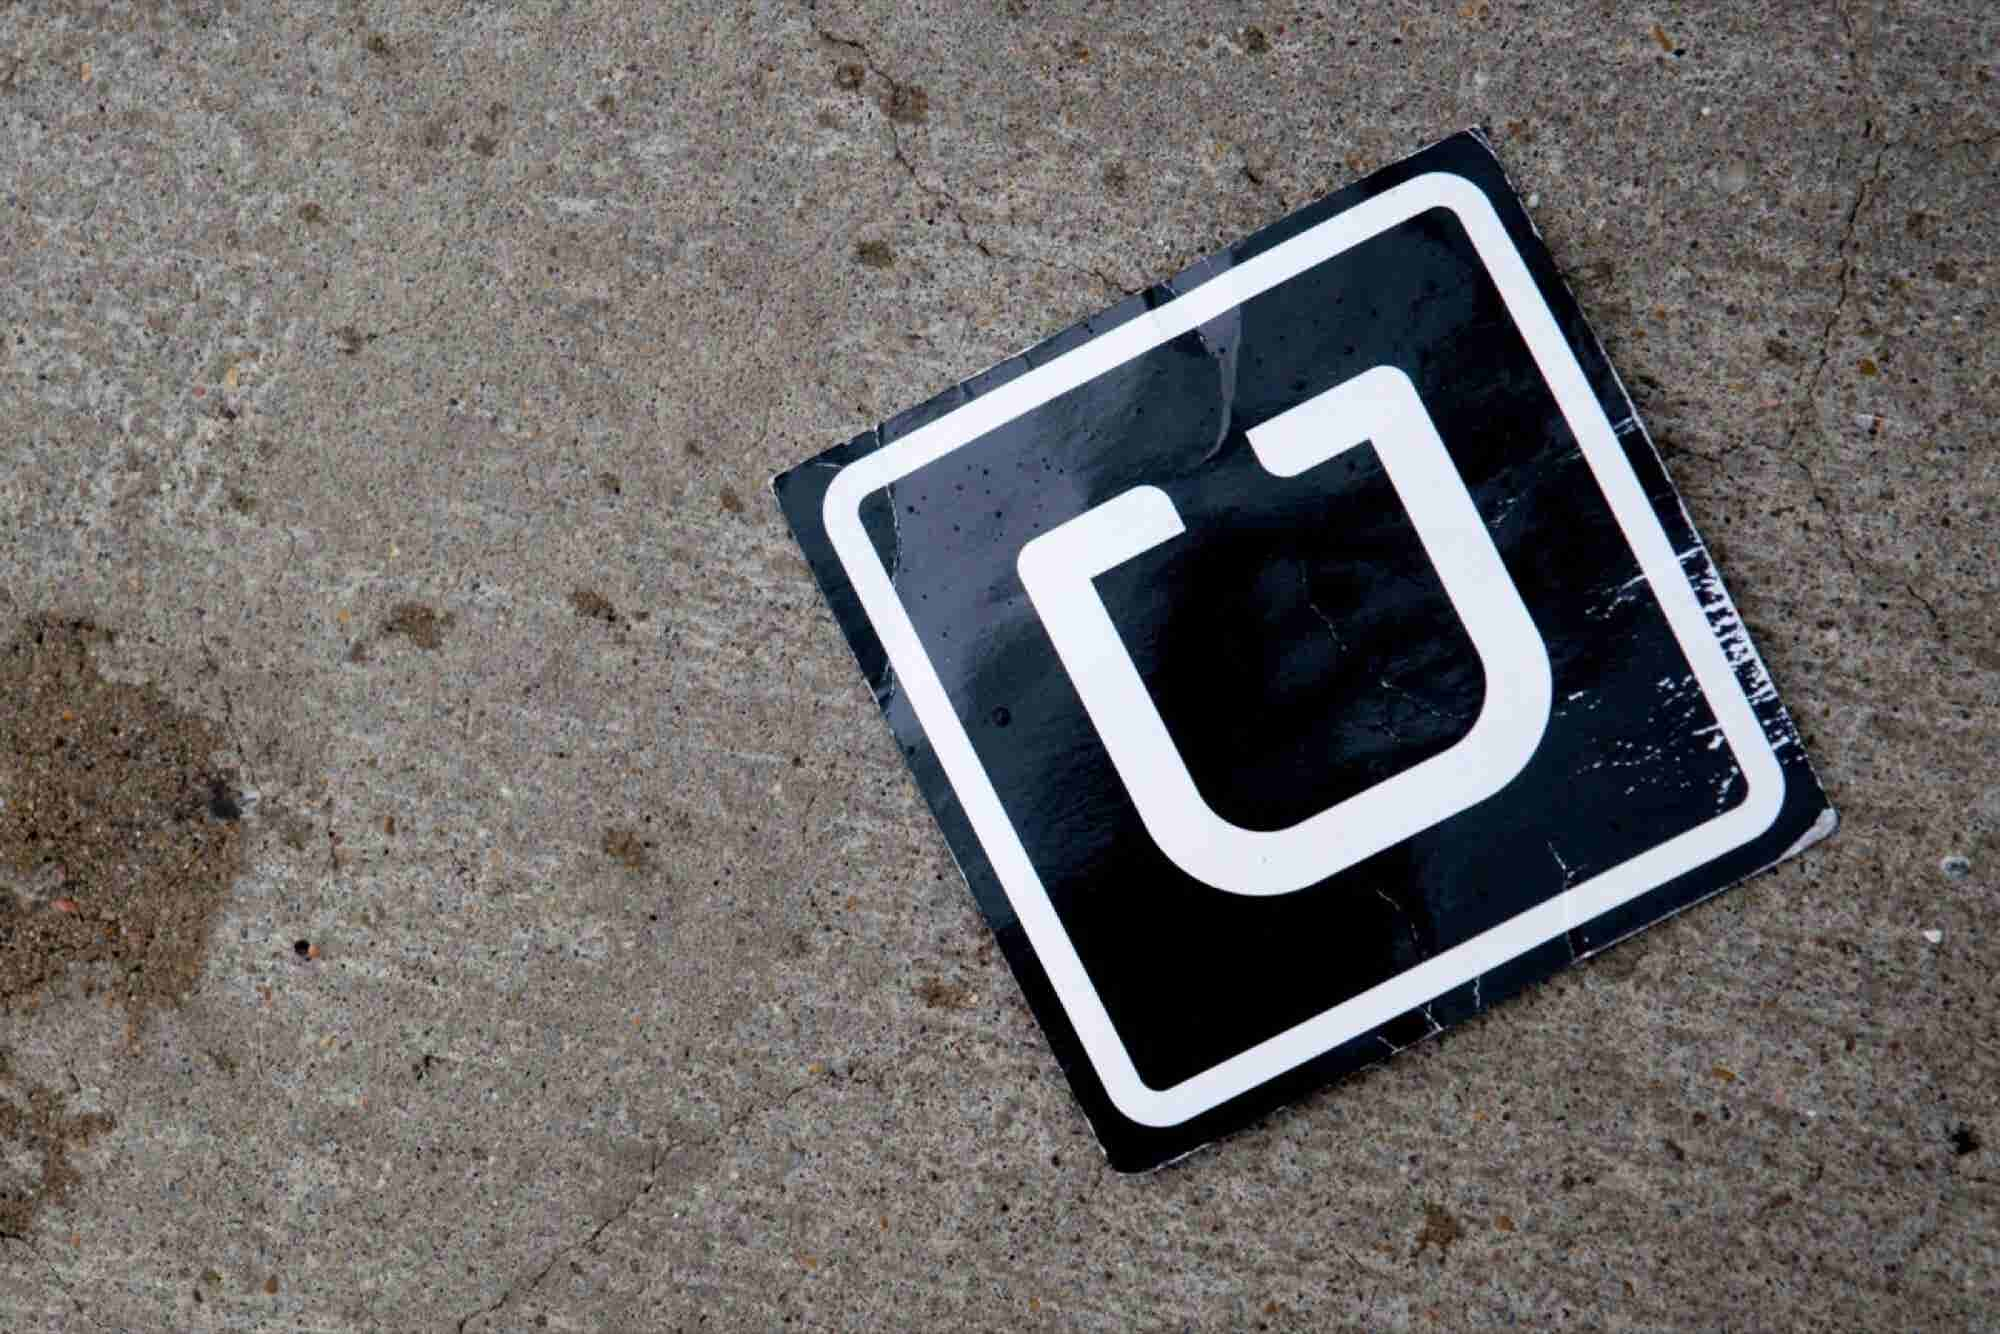 A New CEO May Improve Uber's Tarnished Brand, but It Should Never Have Needed Brand Rehab in the First Place